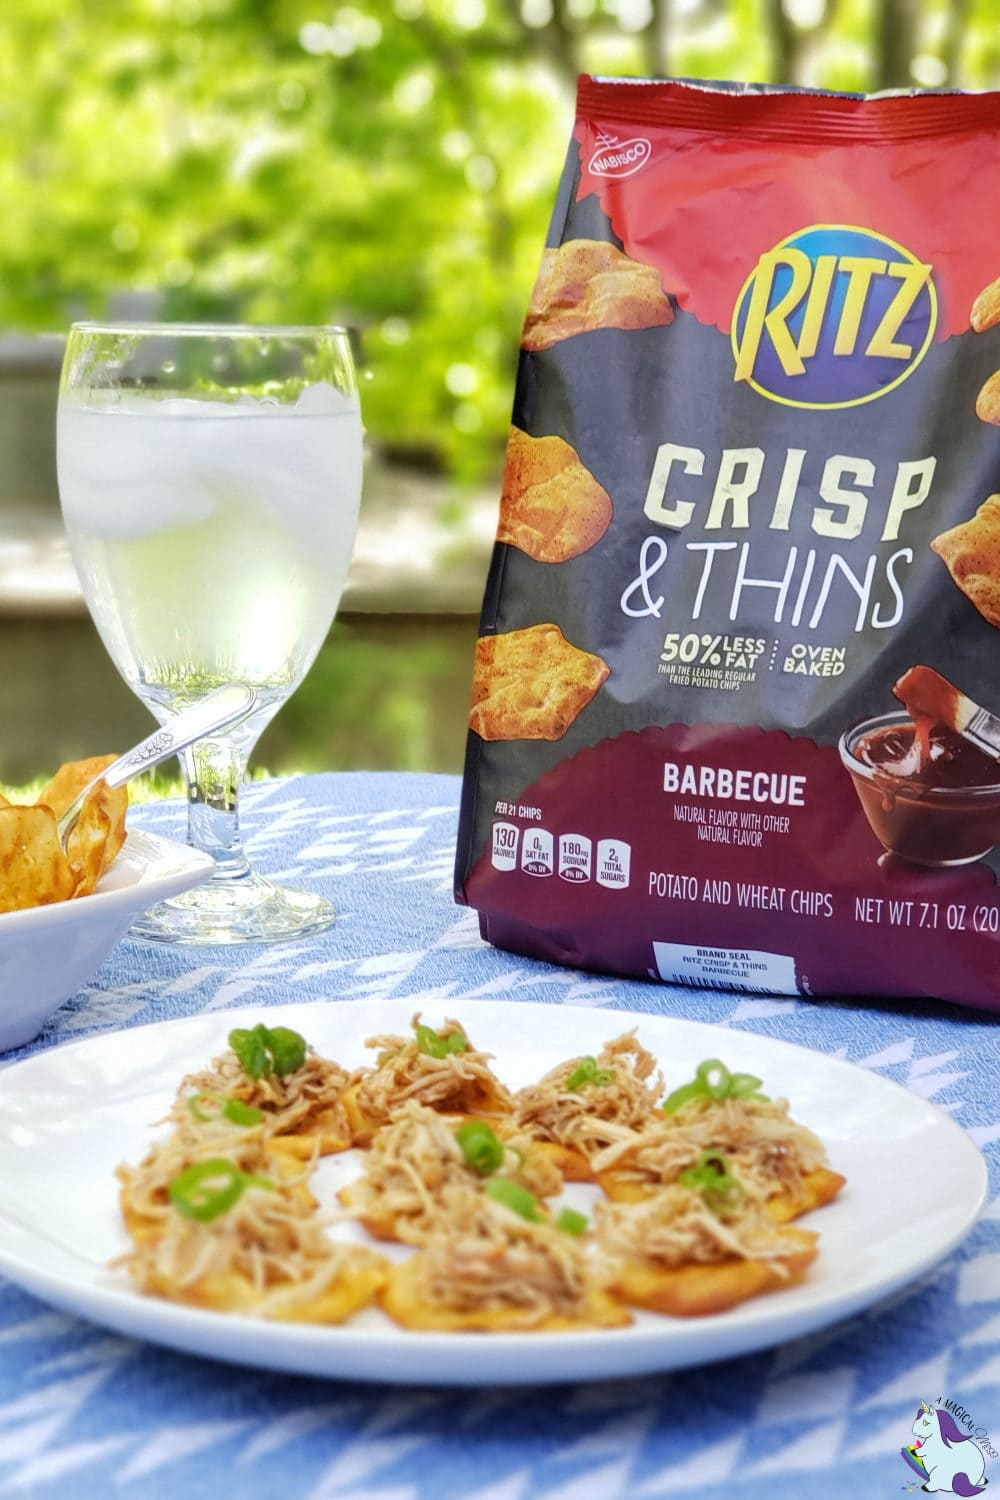 Backyard snacks - pulled chicken on Barbecue RITZ Crisp and Thins